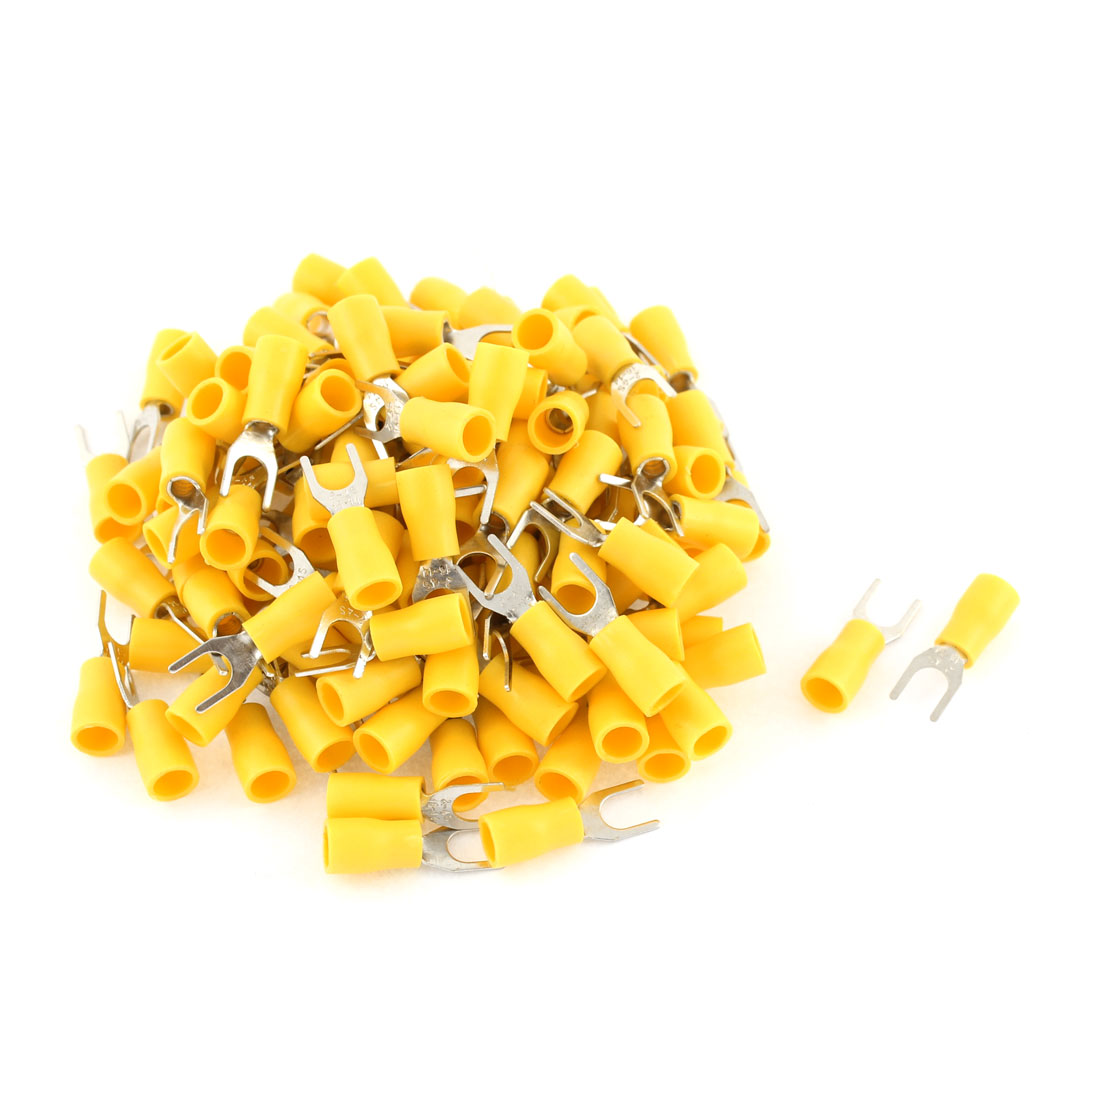 135Pcs SV2-4 Fork Type Yellow Insulated Spade Cable Terminals 16-14AWG